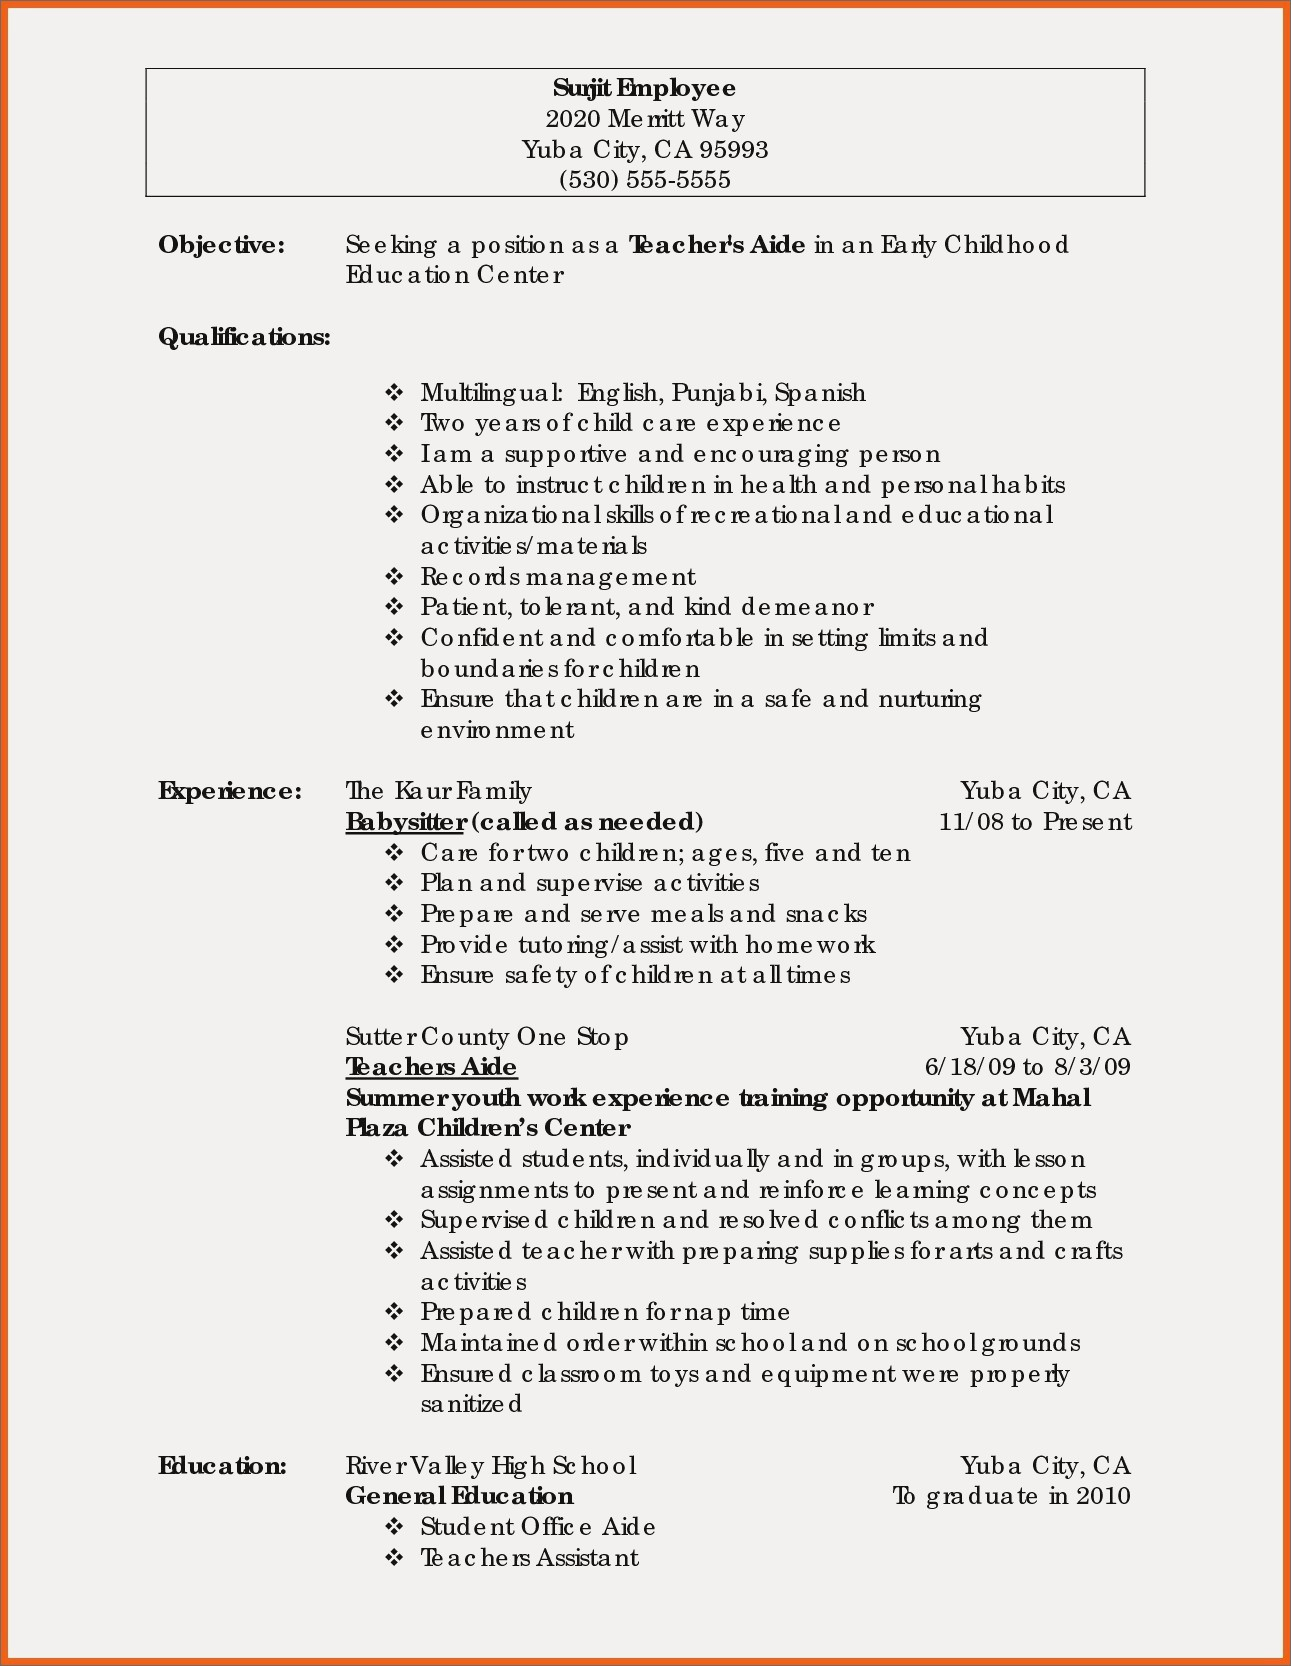 Early Childhood Education Resume Template - Early Childhood Education Resume Samples New Teacher Resume Example